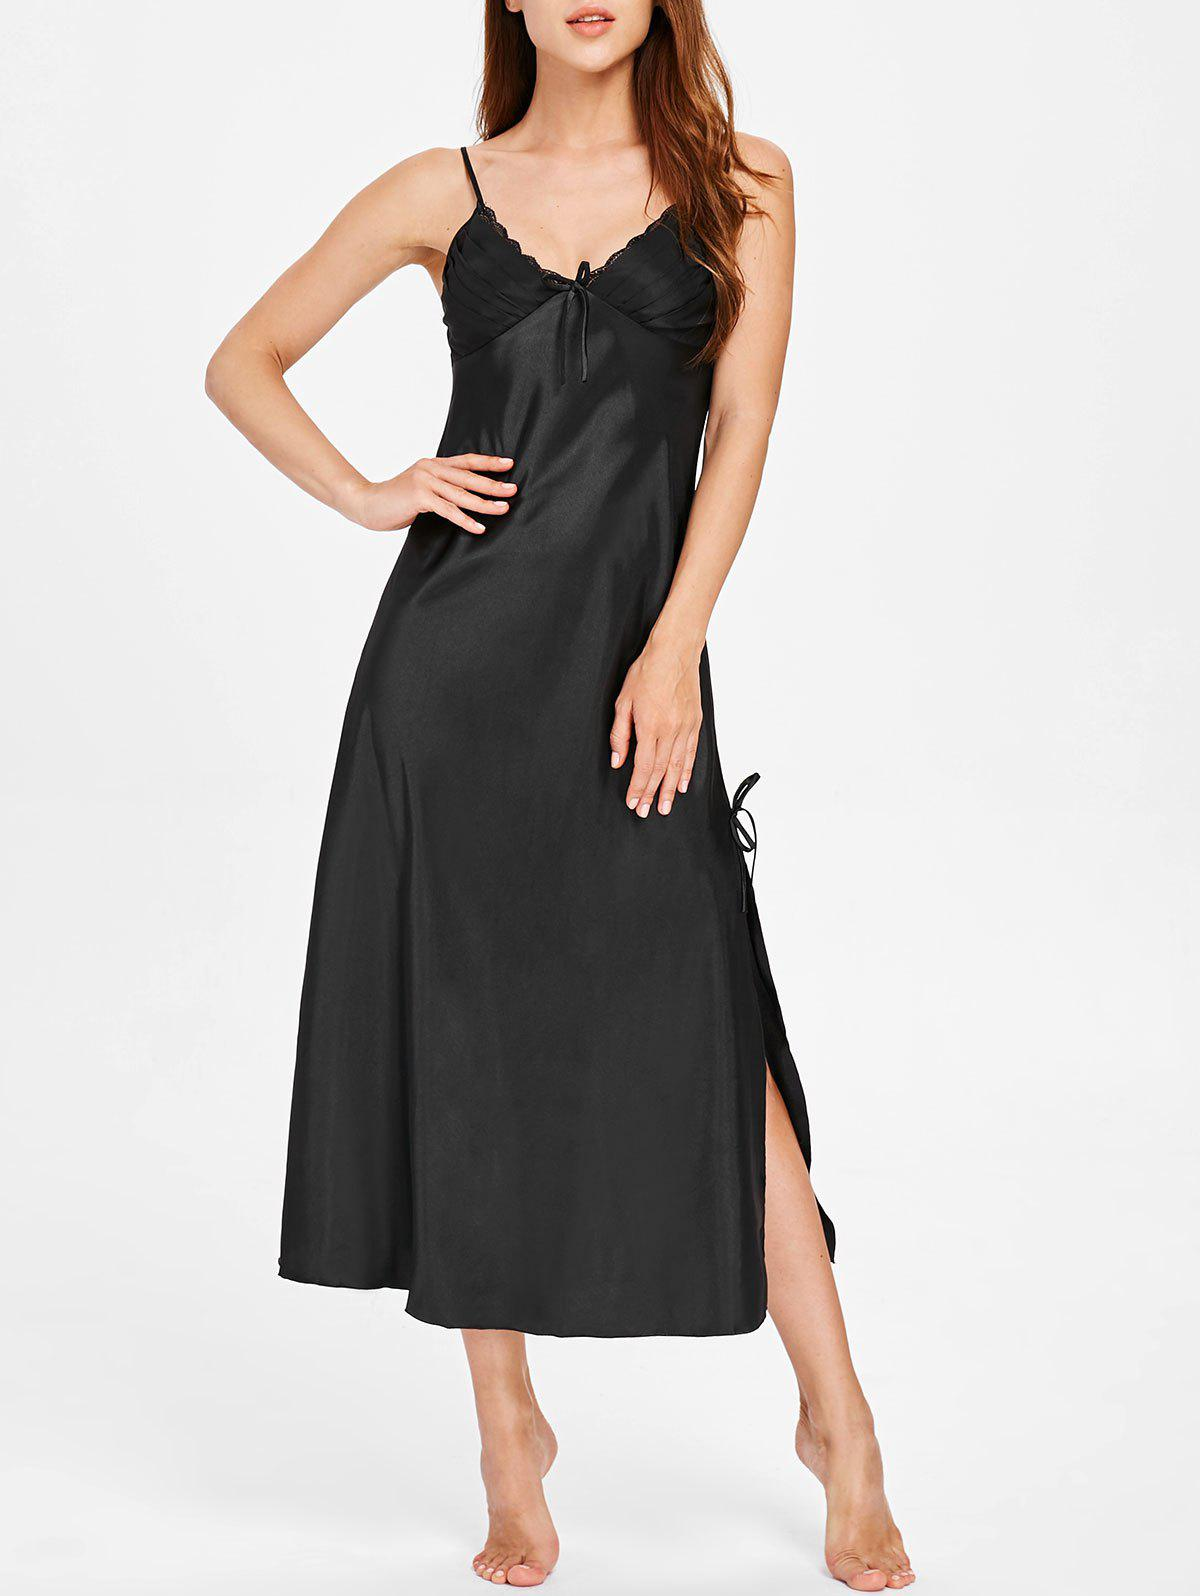 Nightgown Lingerie Slip Dress - BLACK L